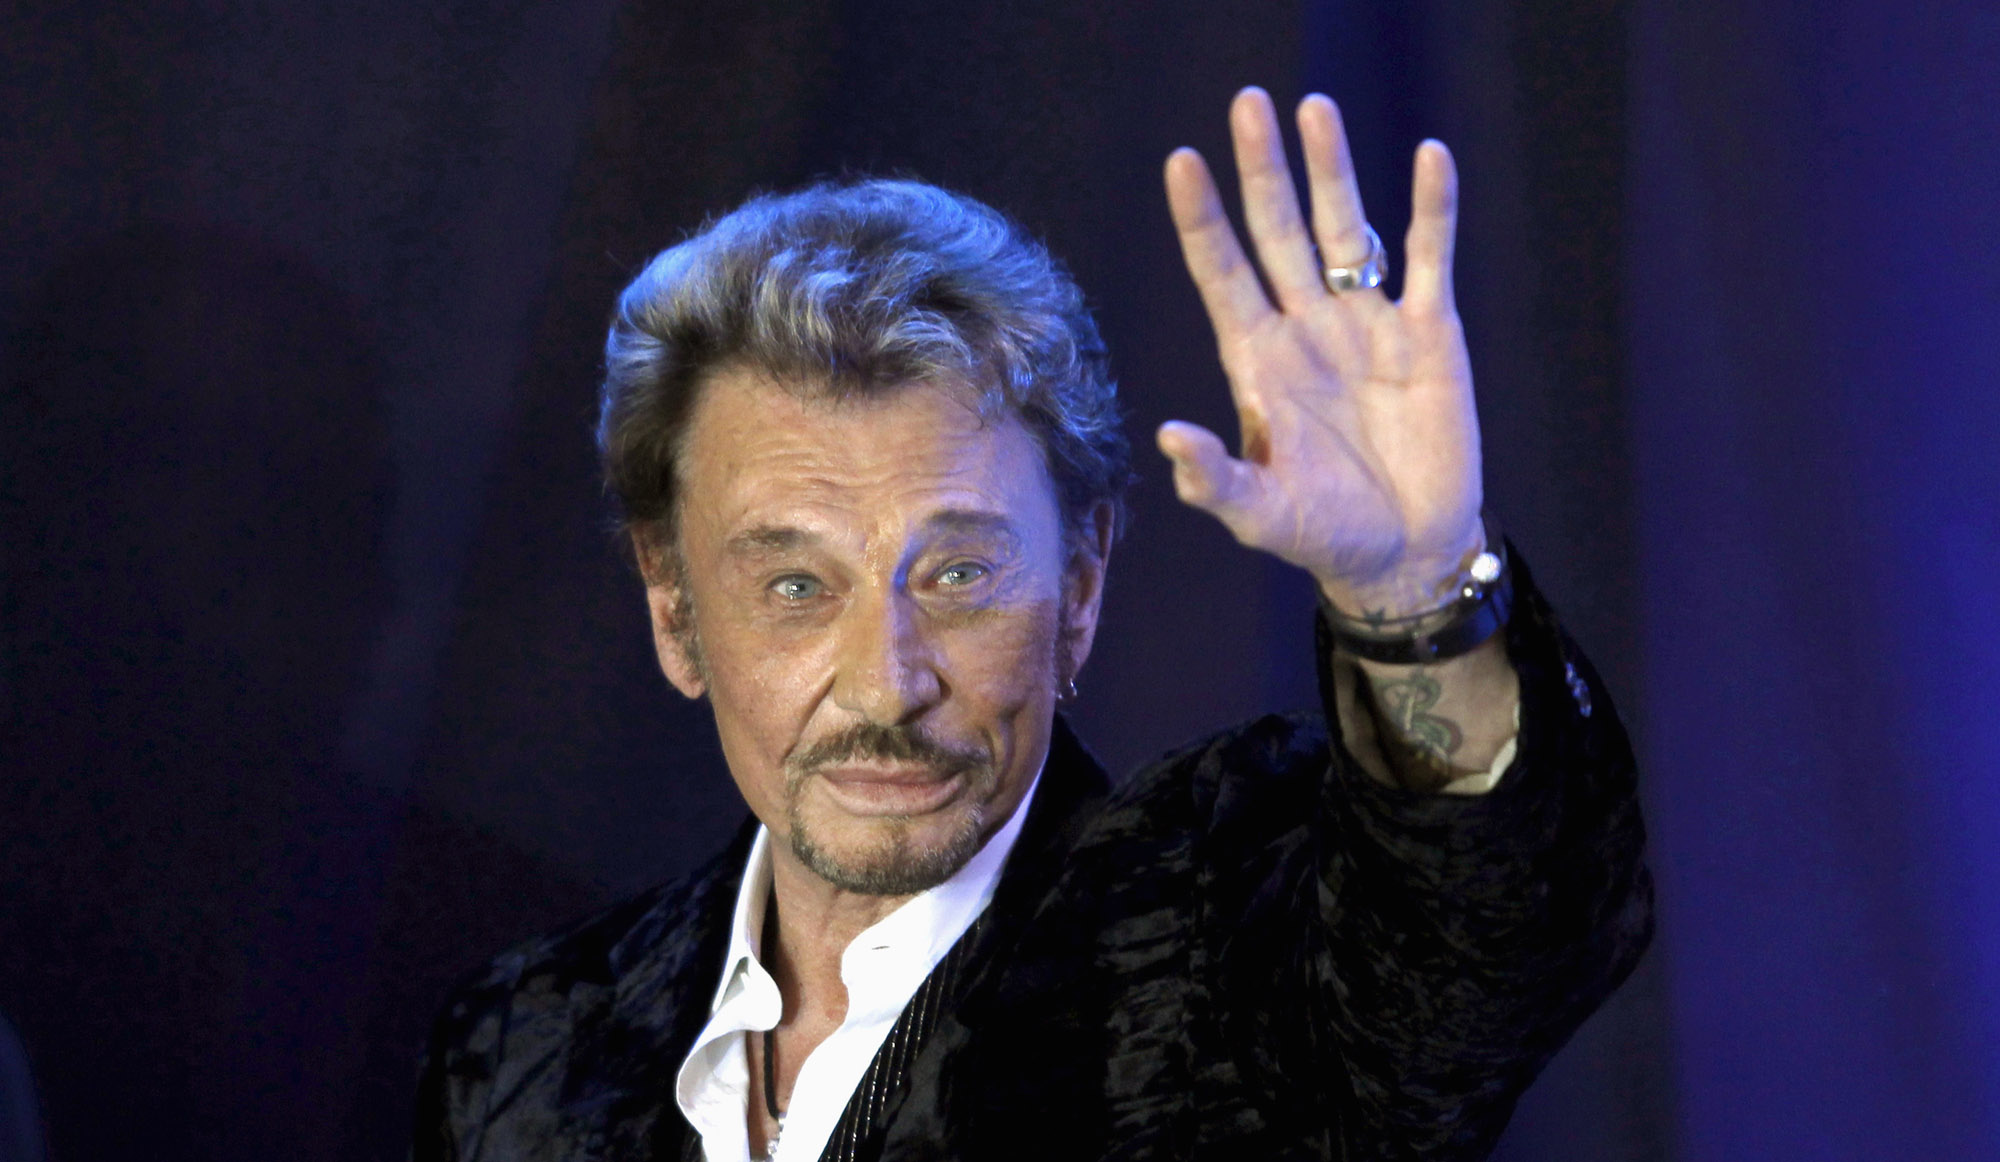 """French singer Johnny Hallyday waves to fans attending a ceremony to promote his new album """"Jamais seul"""" (Never alone) at the Virgin Megastore in Paris early March 28, 2011. REUTERS/Charles Platiau ( FRANCE - Tags: ENTERTAINMENT) - RTR2KHTG"""